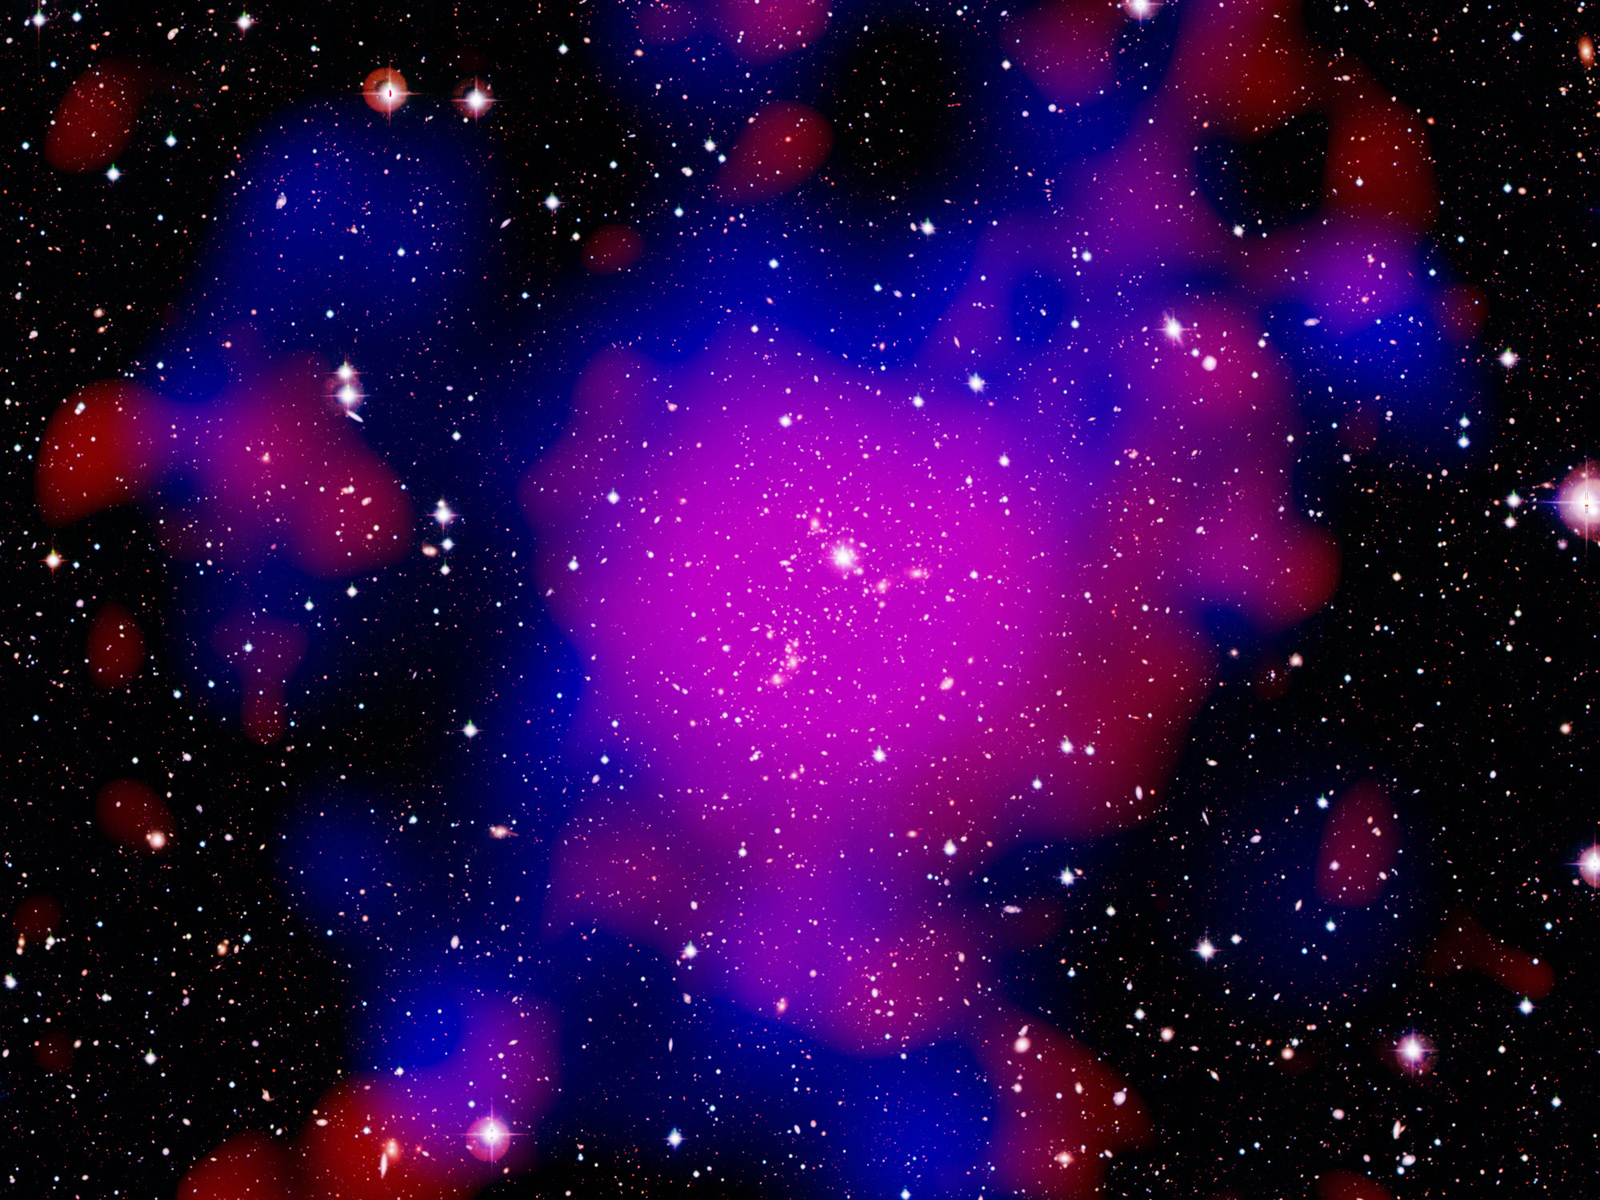 Connections in the Cosmic Web: Pandora Cluster